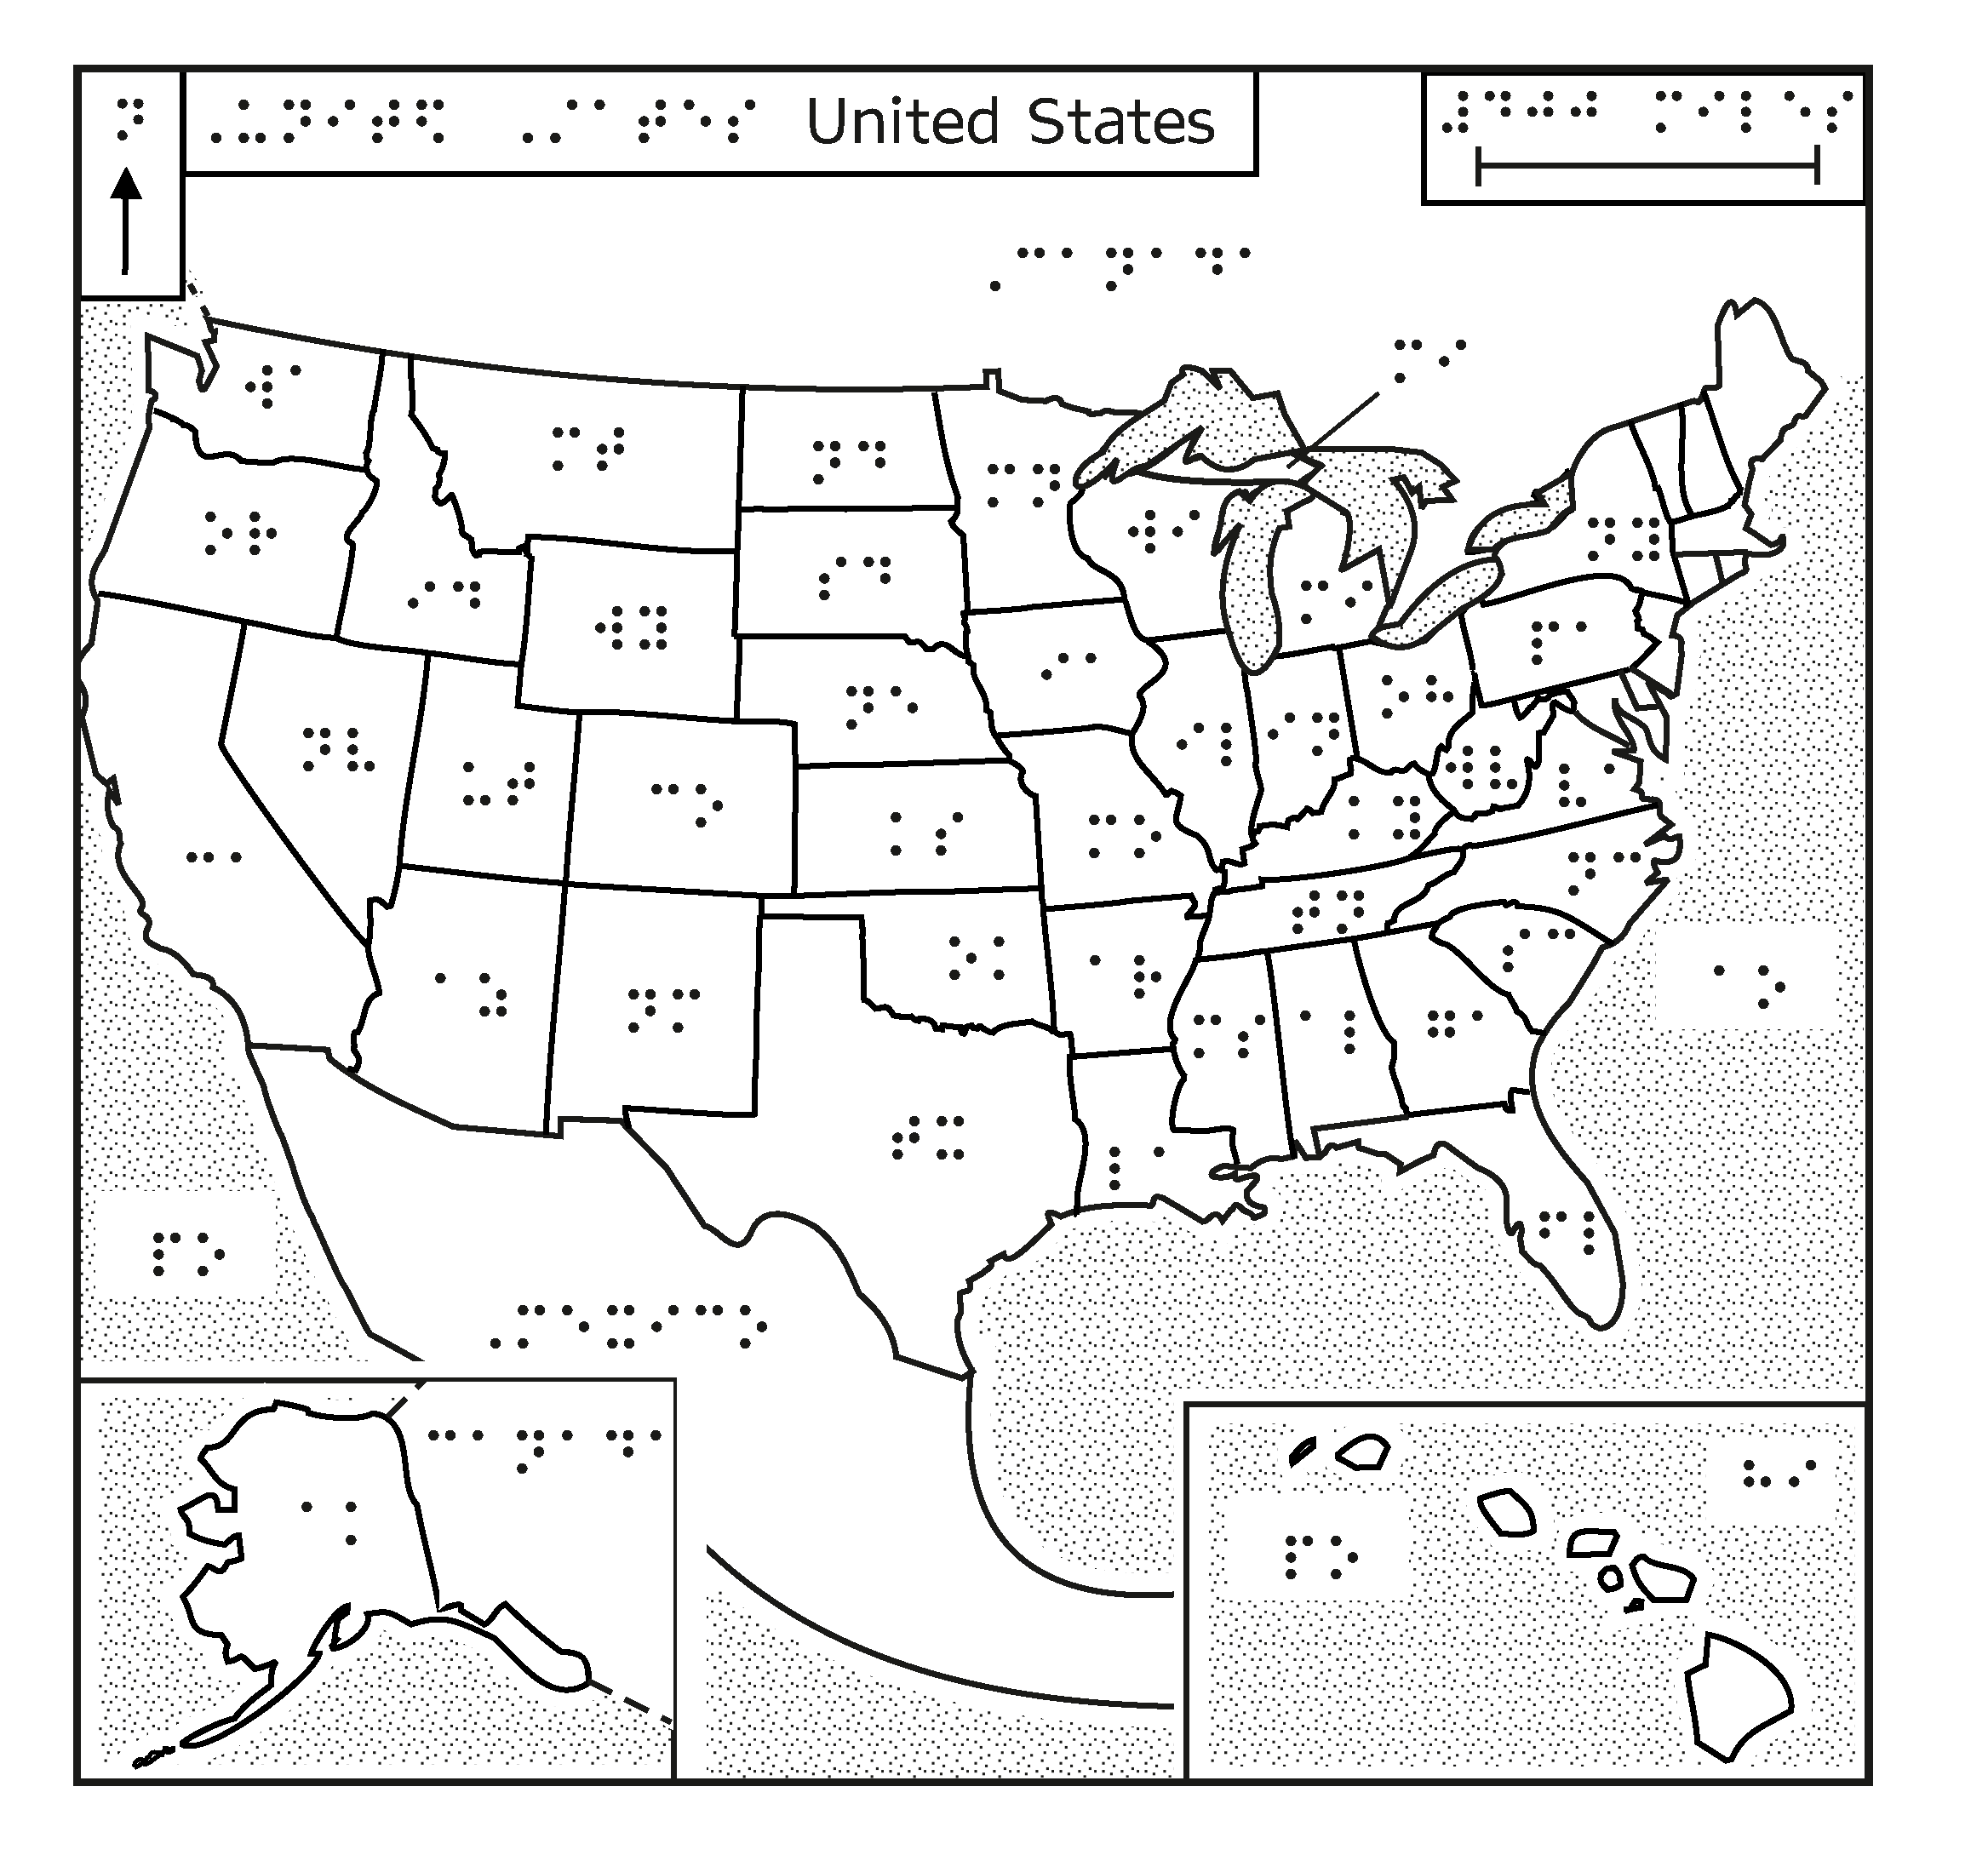 Braille map of the USA